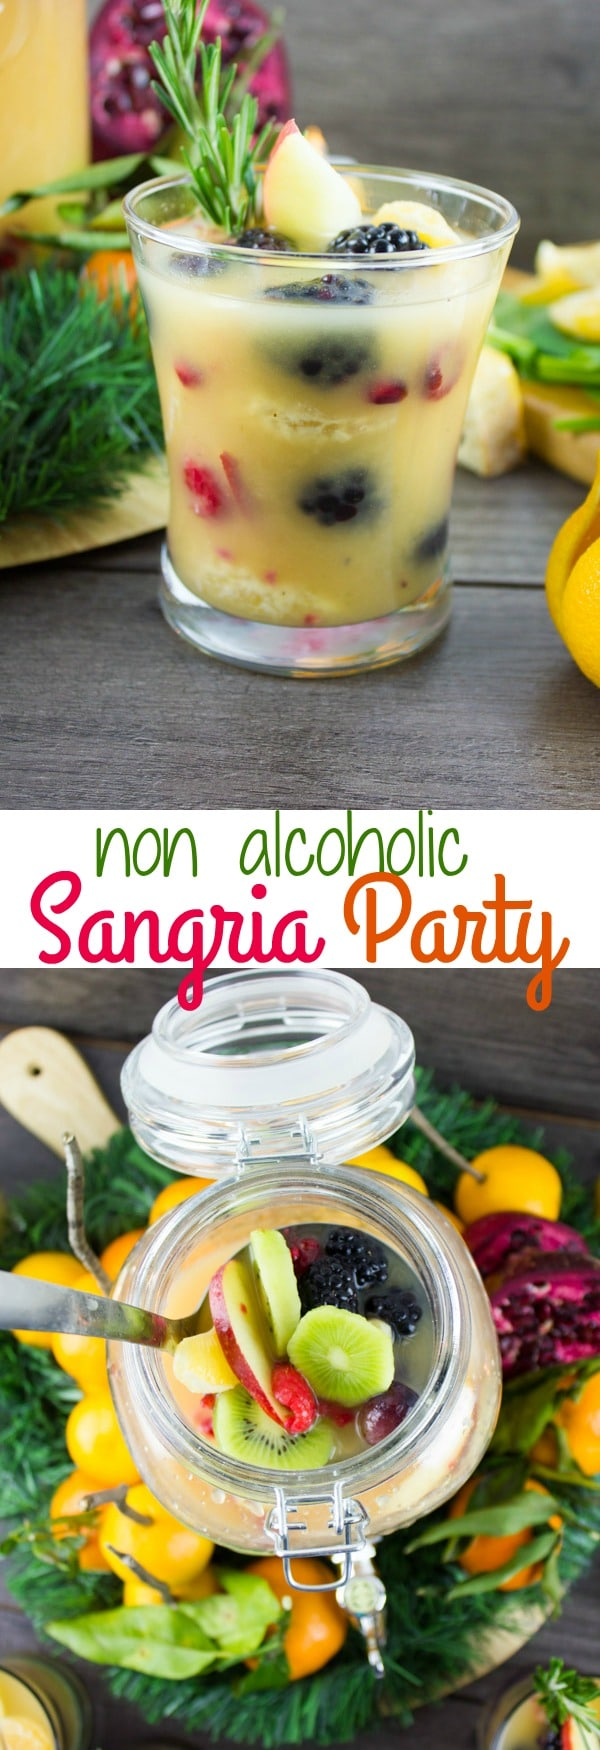 Learn how to make the best Non-Alcoholic Sangria using my step-by-step guide and serve this easy holiday cocktail with my Orange Salmon Bites for a showstopping Holiday Party! #sangria, #party, #holidays, #drinks, #healthy, #nonalcoholic, #easy, #festive